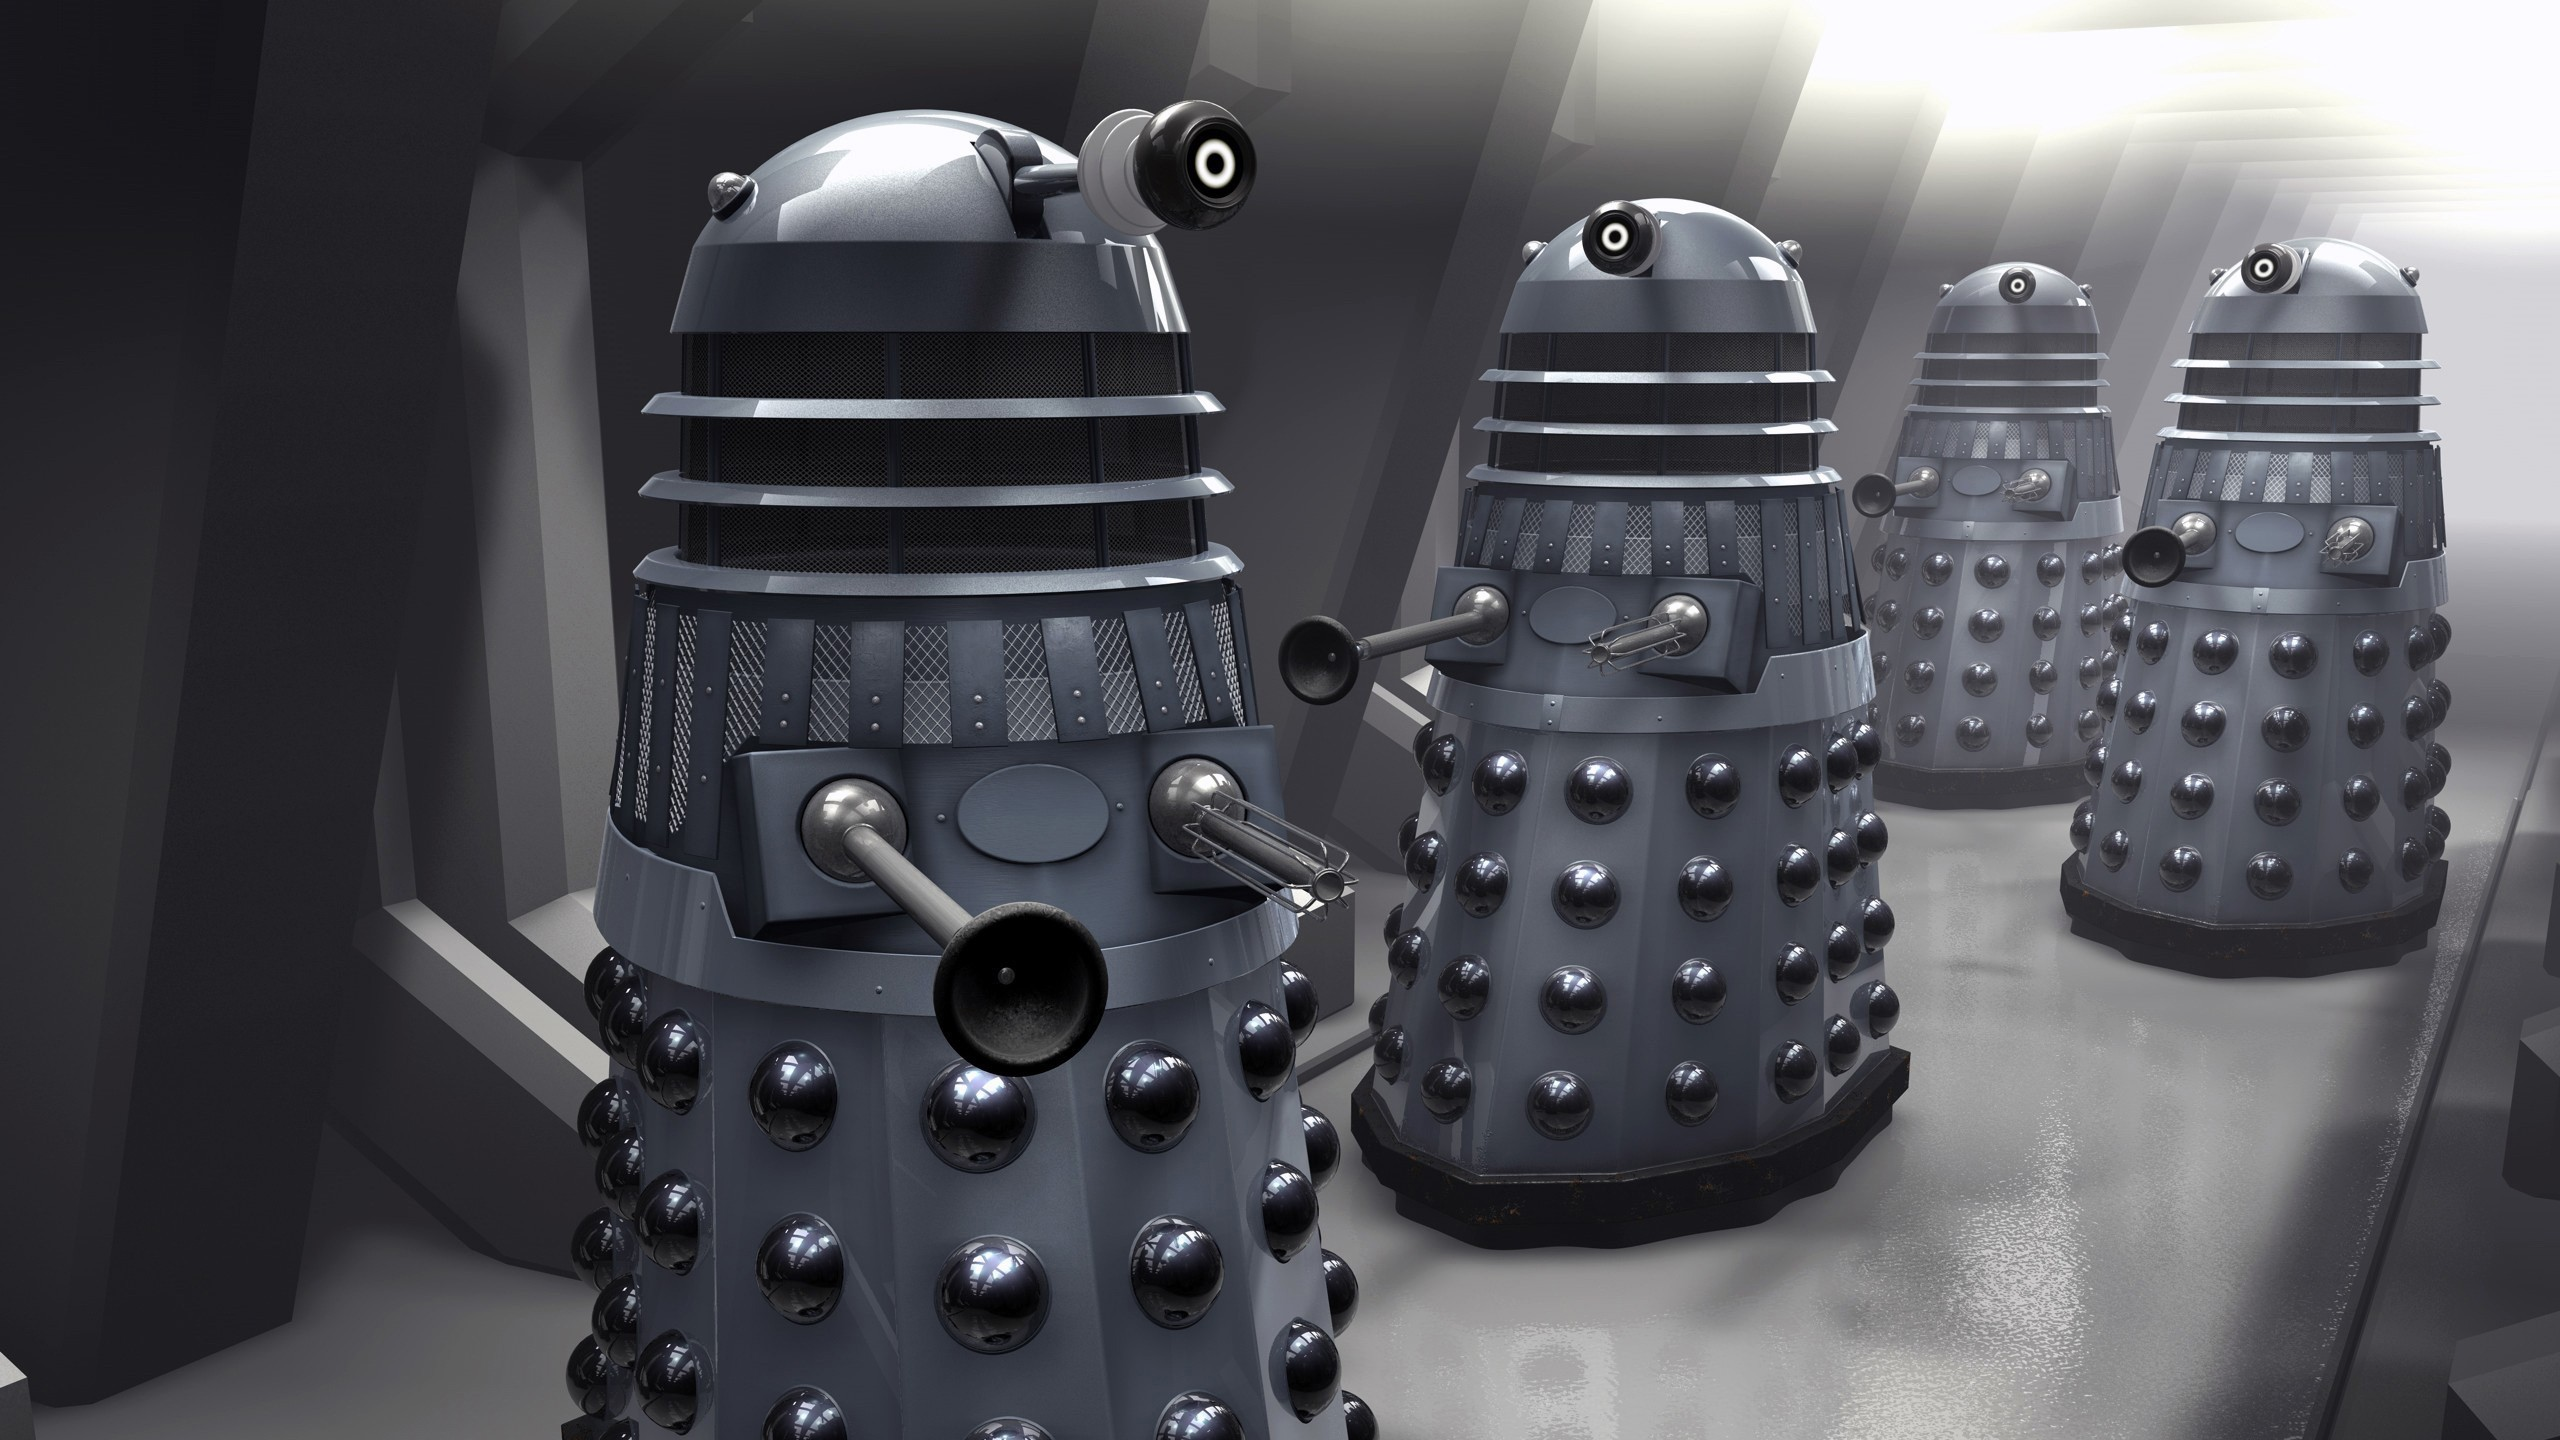 Supreme 3d Wallpaper Doctor Who The Doctor Daleks Wallpapers Hd Desktop And